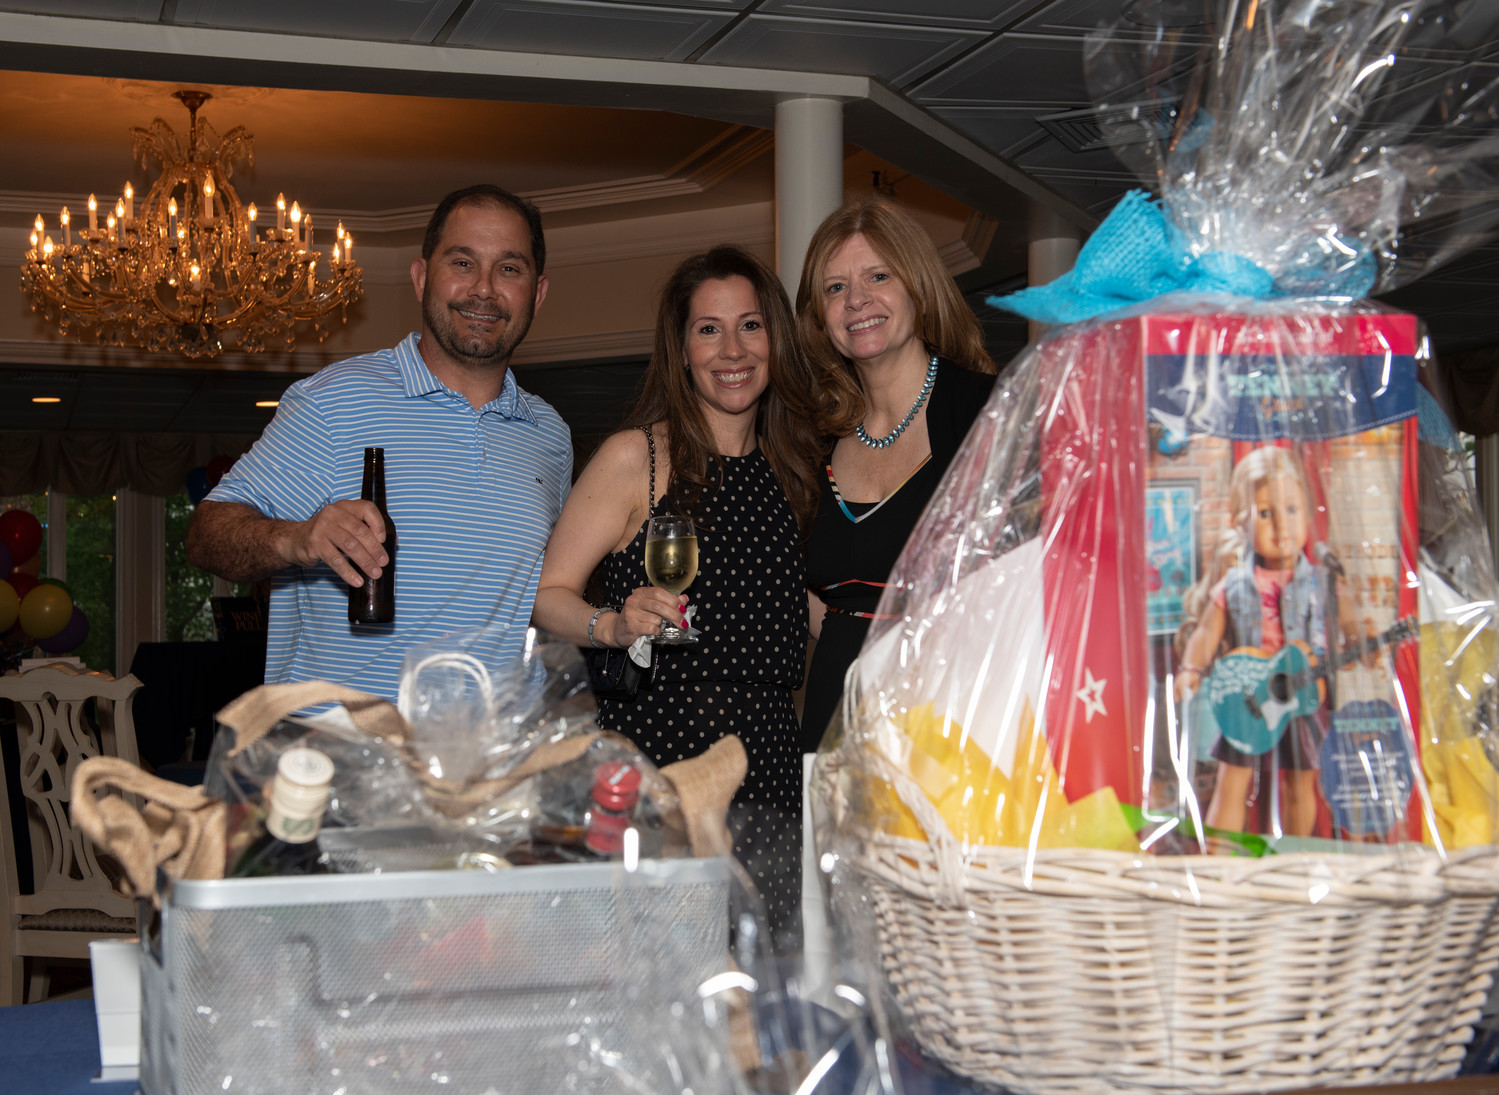 Louie and Angela Madura and Peggy Friedman celebrated a successful night of fun and fundraising.